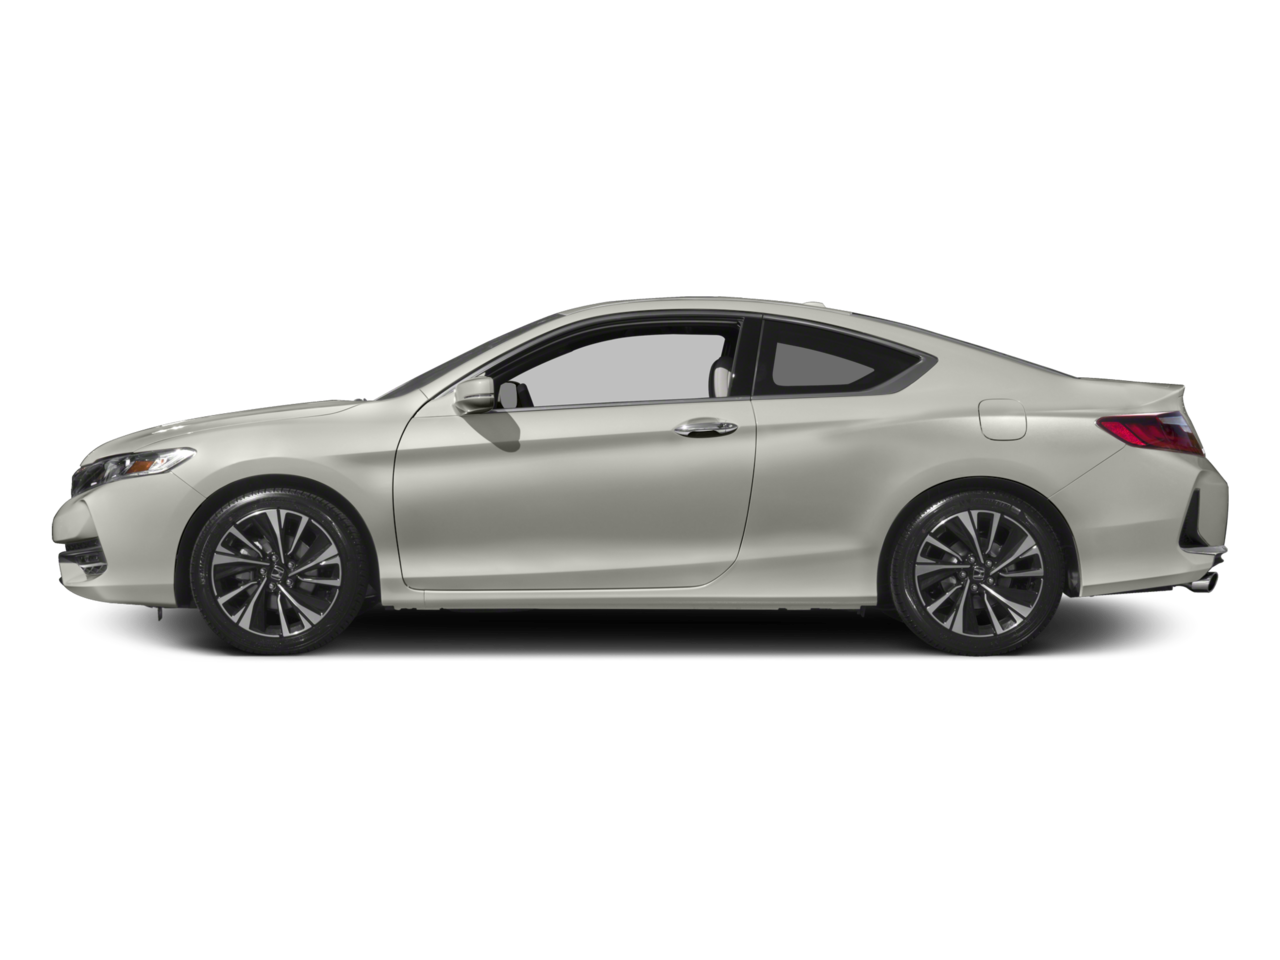 2017 Honda Accord Coupe - Springfield New Cars